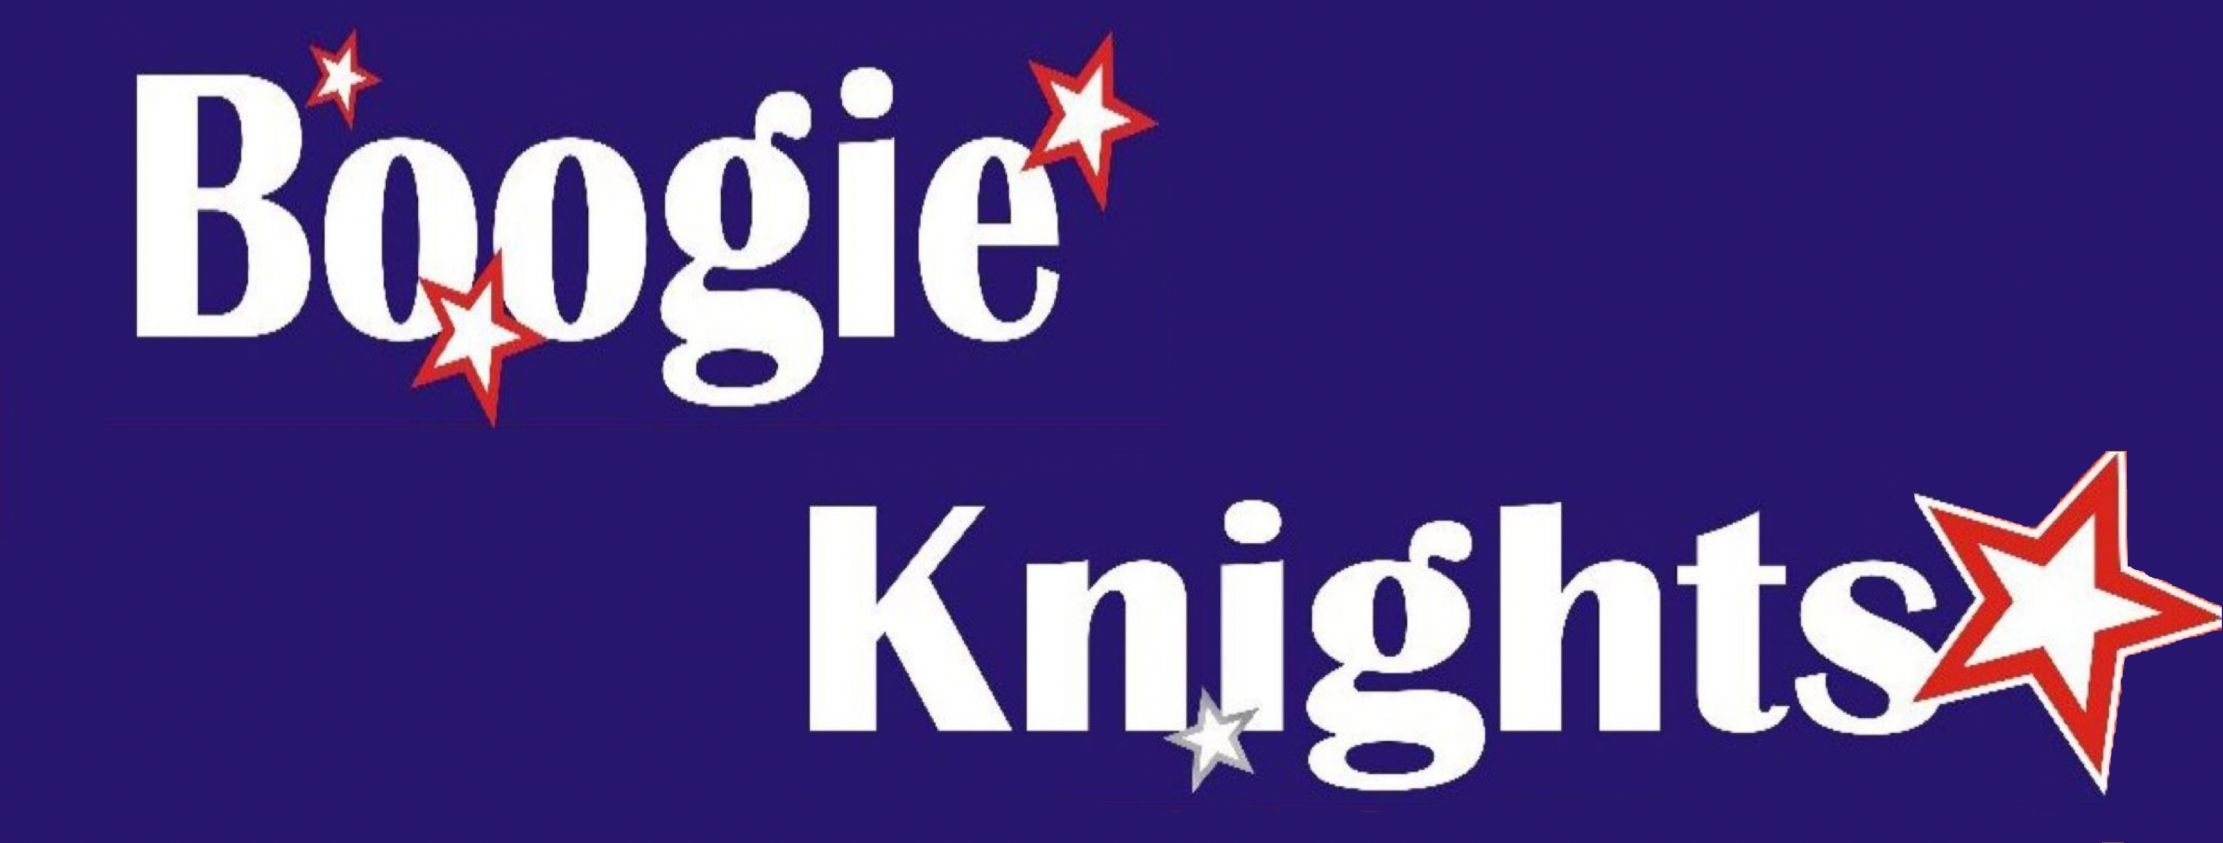 Boogie Knights Fancy Dress